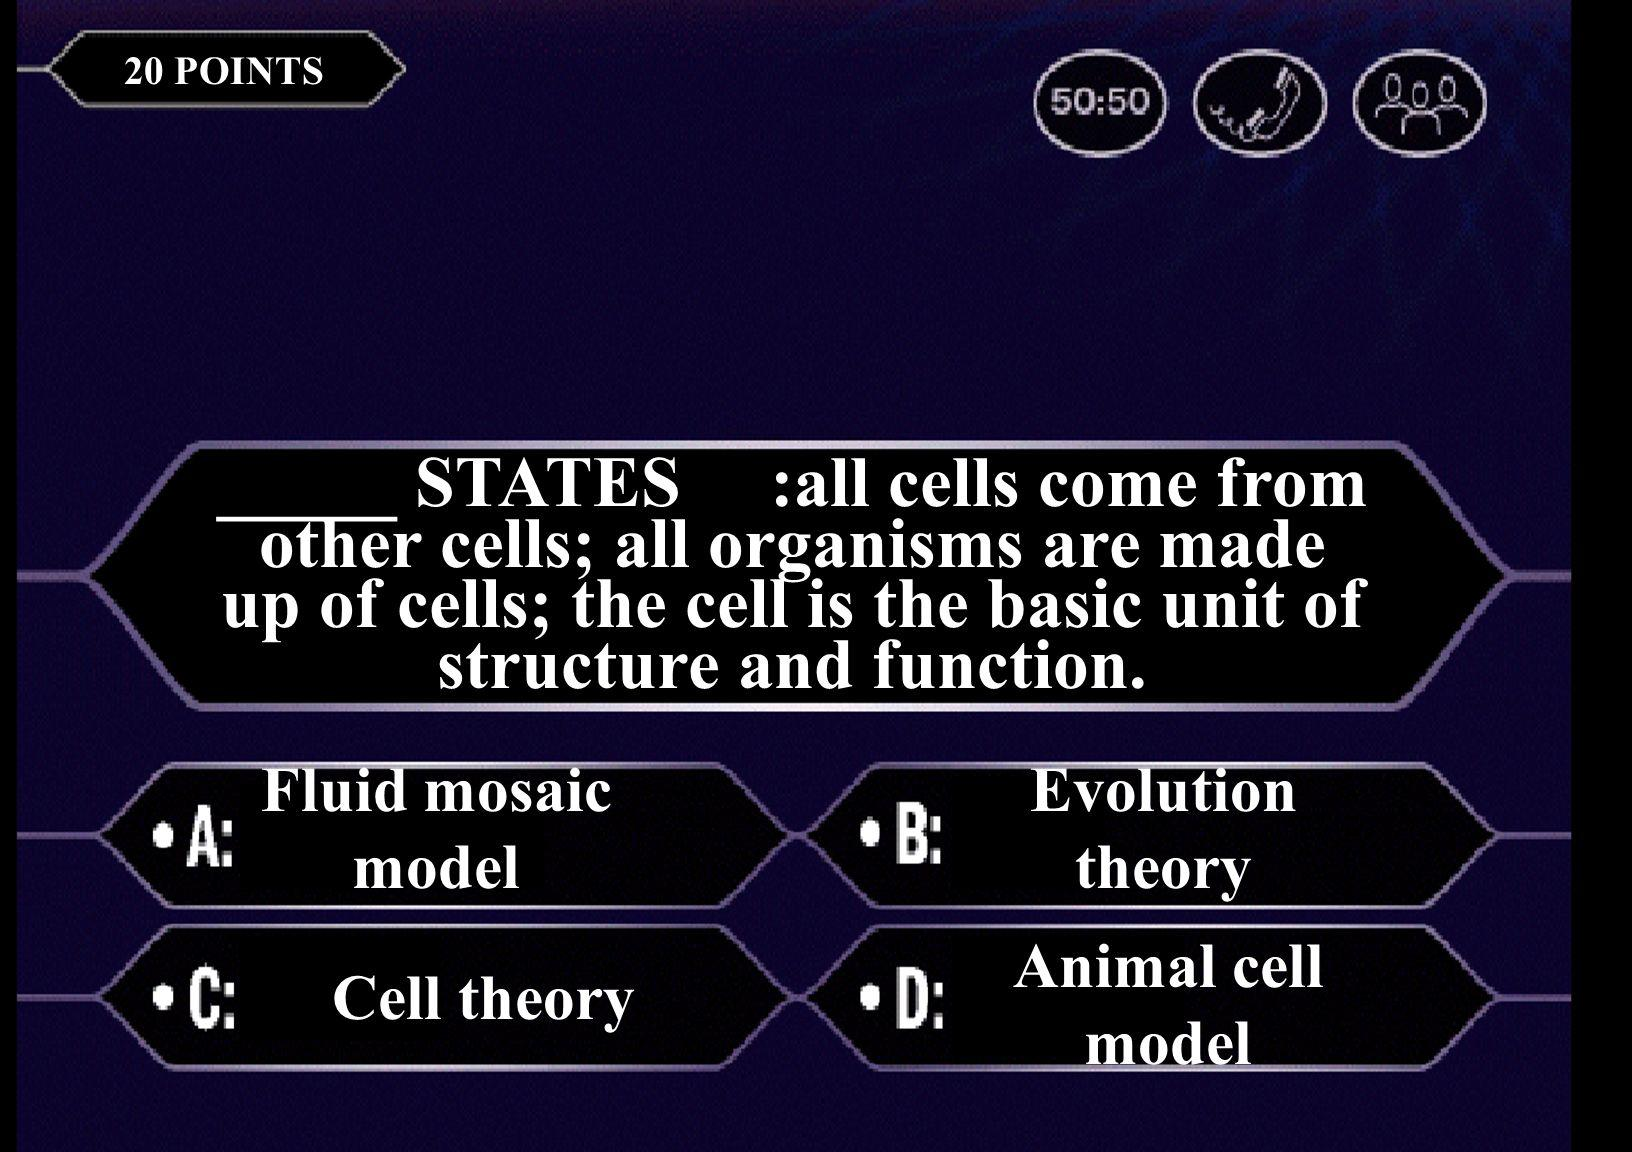 The basic unit of life is a(n) cell airtissue 20 POINTS _____ STATES :all cells come from other cells; all organisms are made up of cells; the cell is the basic unit of structure and function.